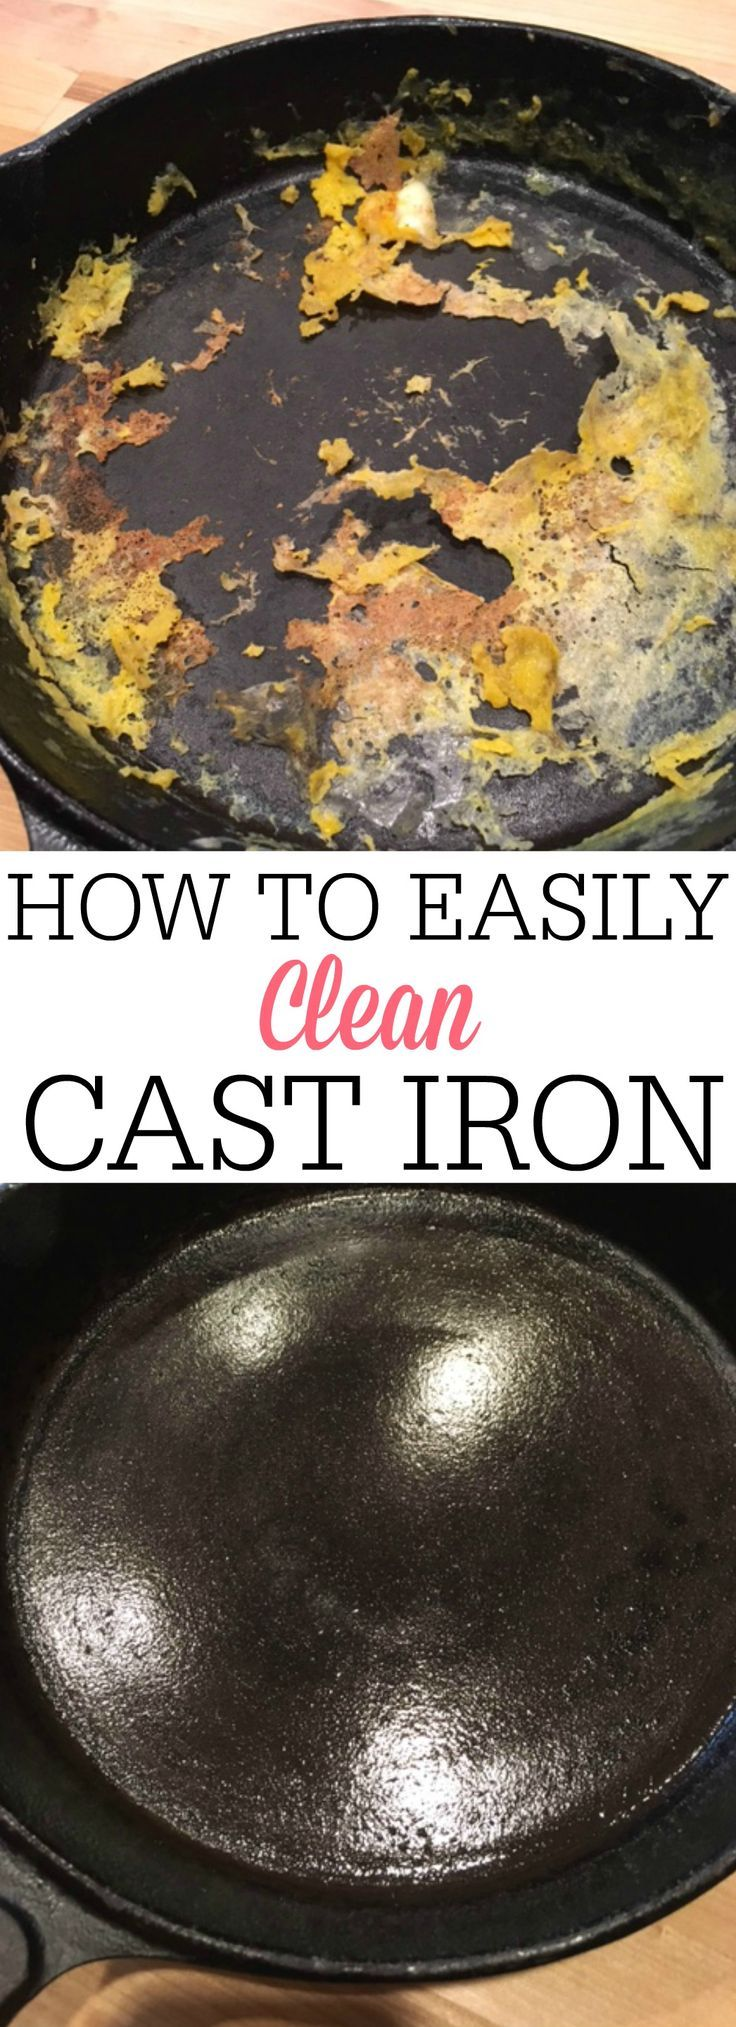 Clean your cast iron skillet in SECONDS with this simple tip. See how to easily clean a cast iron skillet and never have to scrub again.